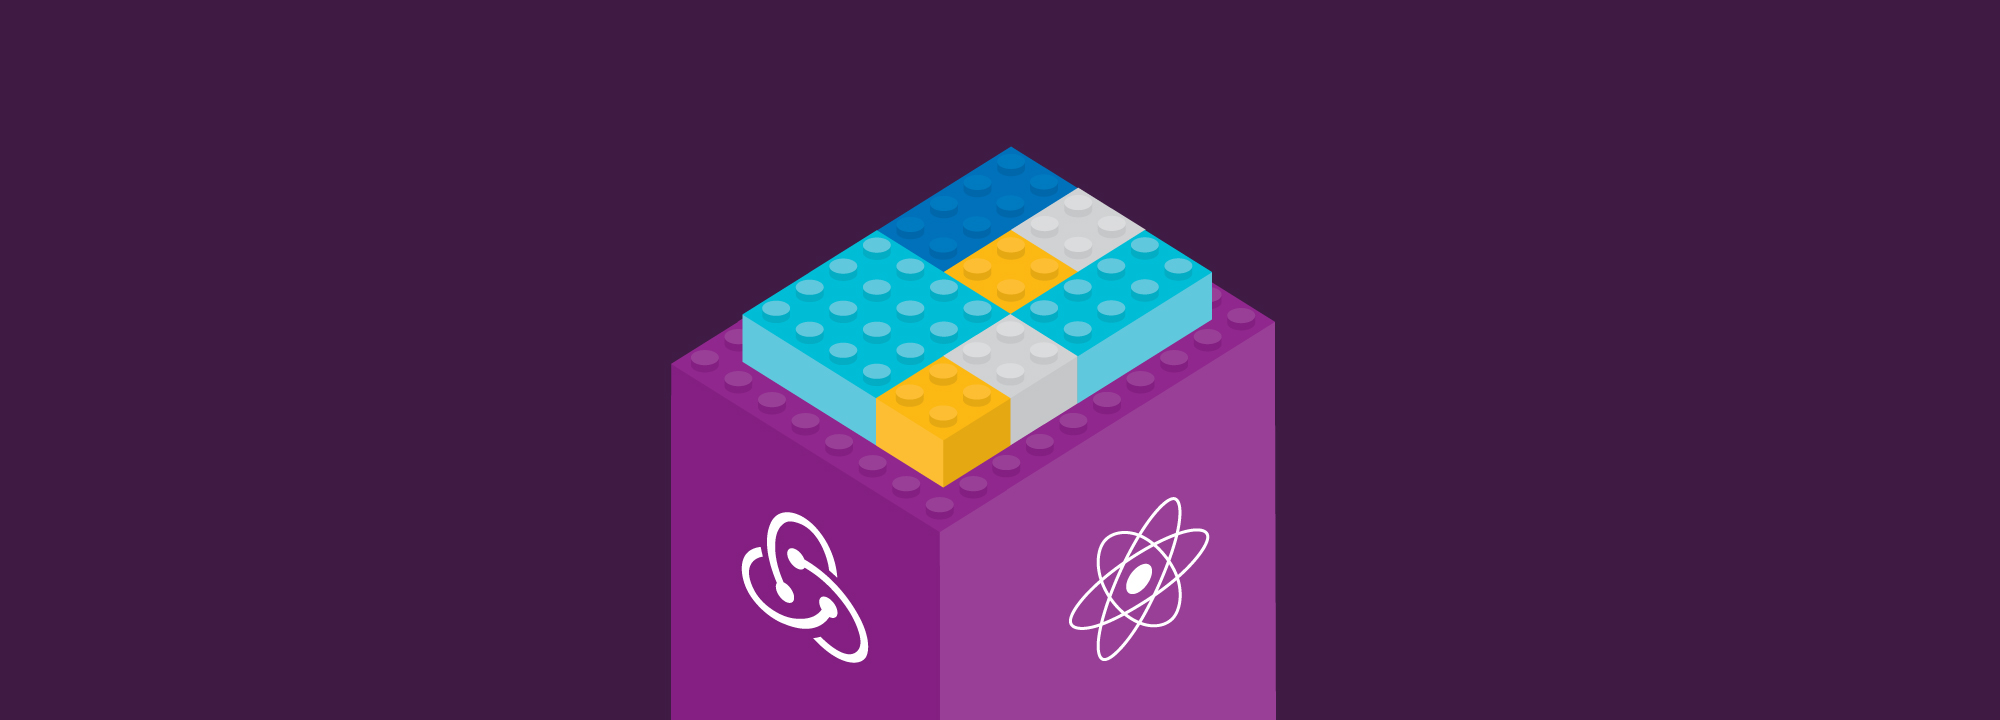 3 simple steps to improve your React Redux code | Cheesecake Labs